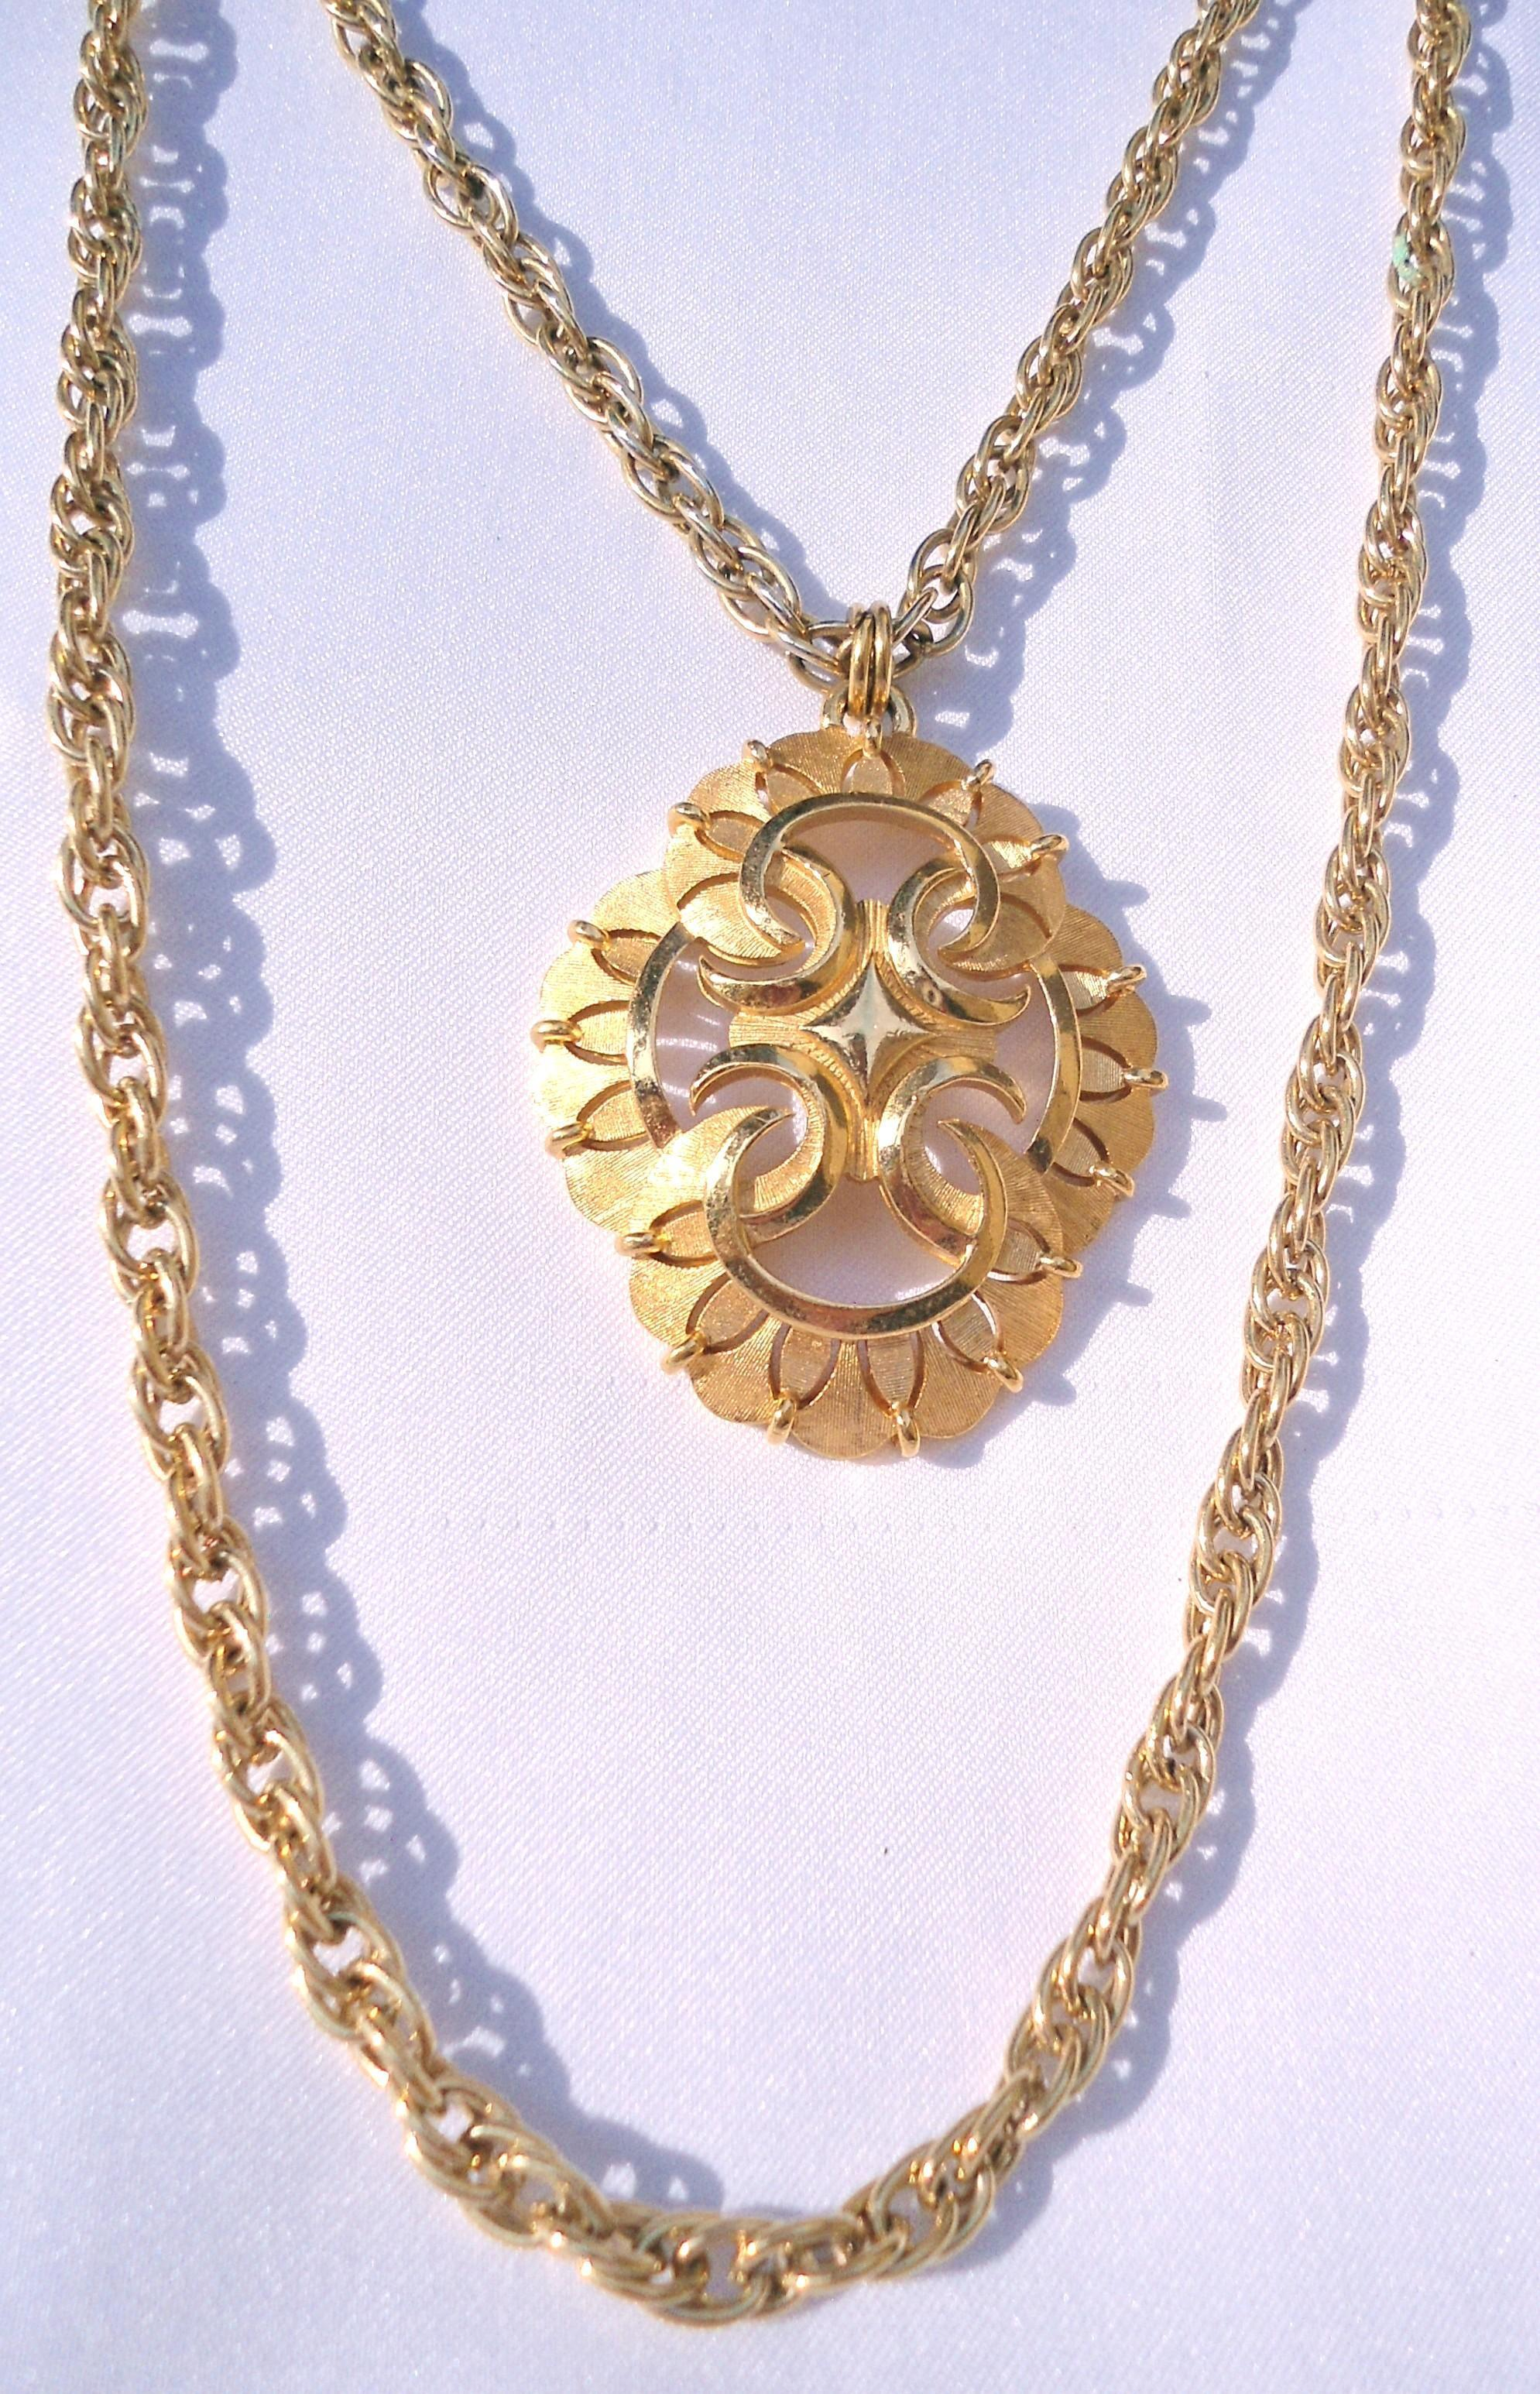 Vintage Trifari 2 layer Gold Tone Thick Chain